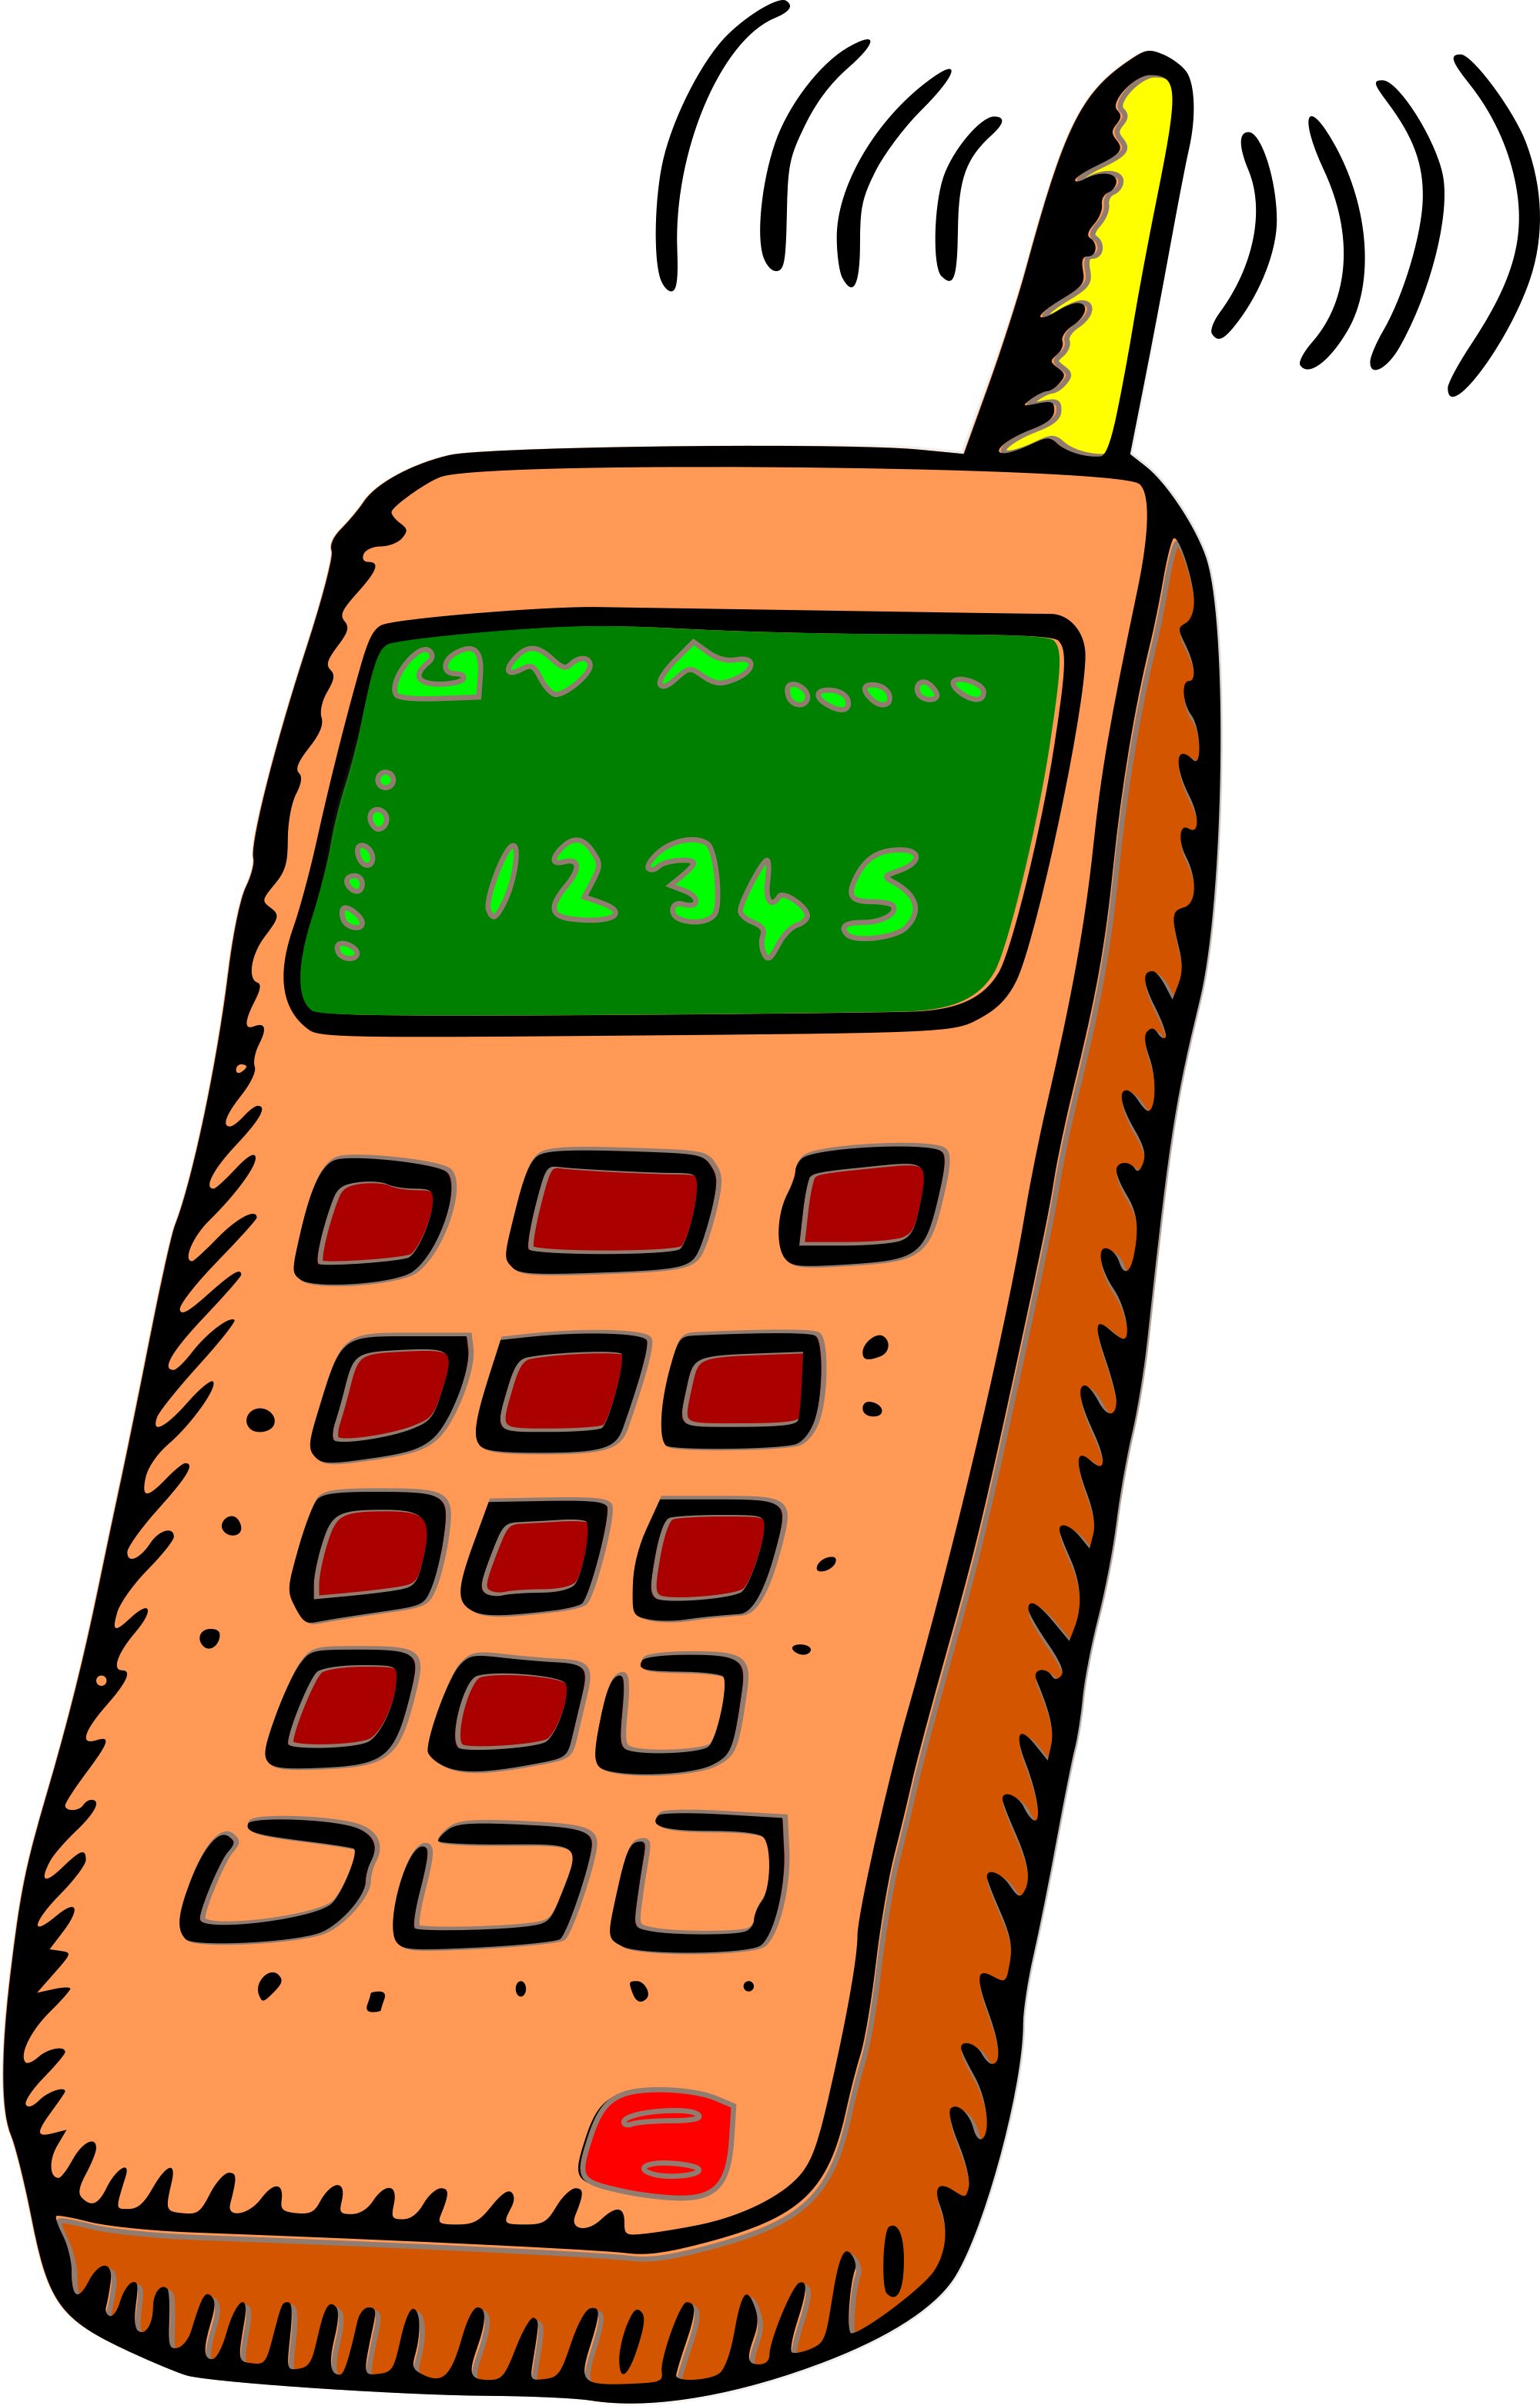 Telephone animation